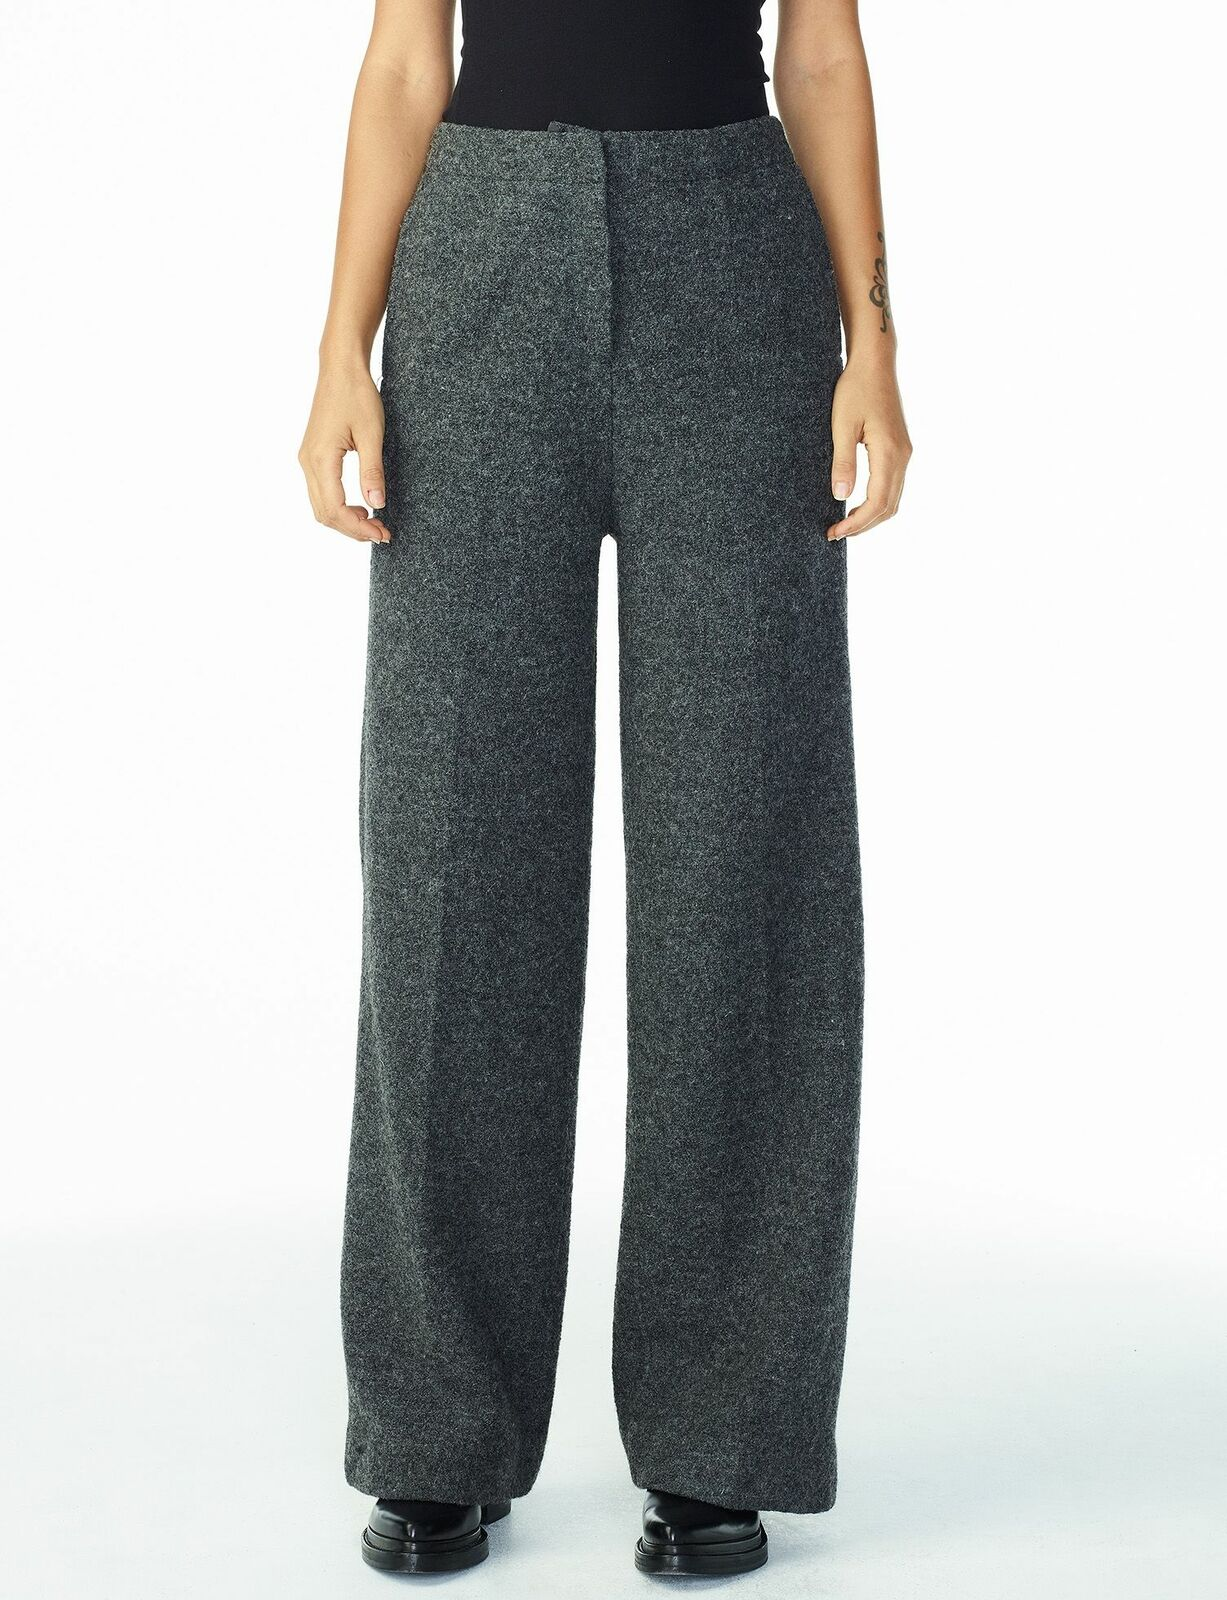 Armani Exchange Womens Boucle Flare Trouser Pants Size 8 x 32 NWT Heavy Wool A X